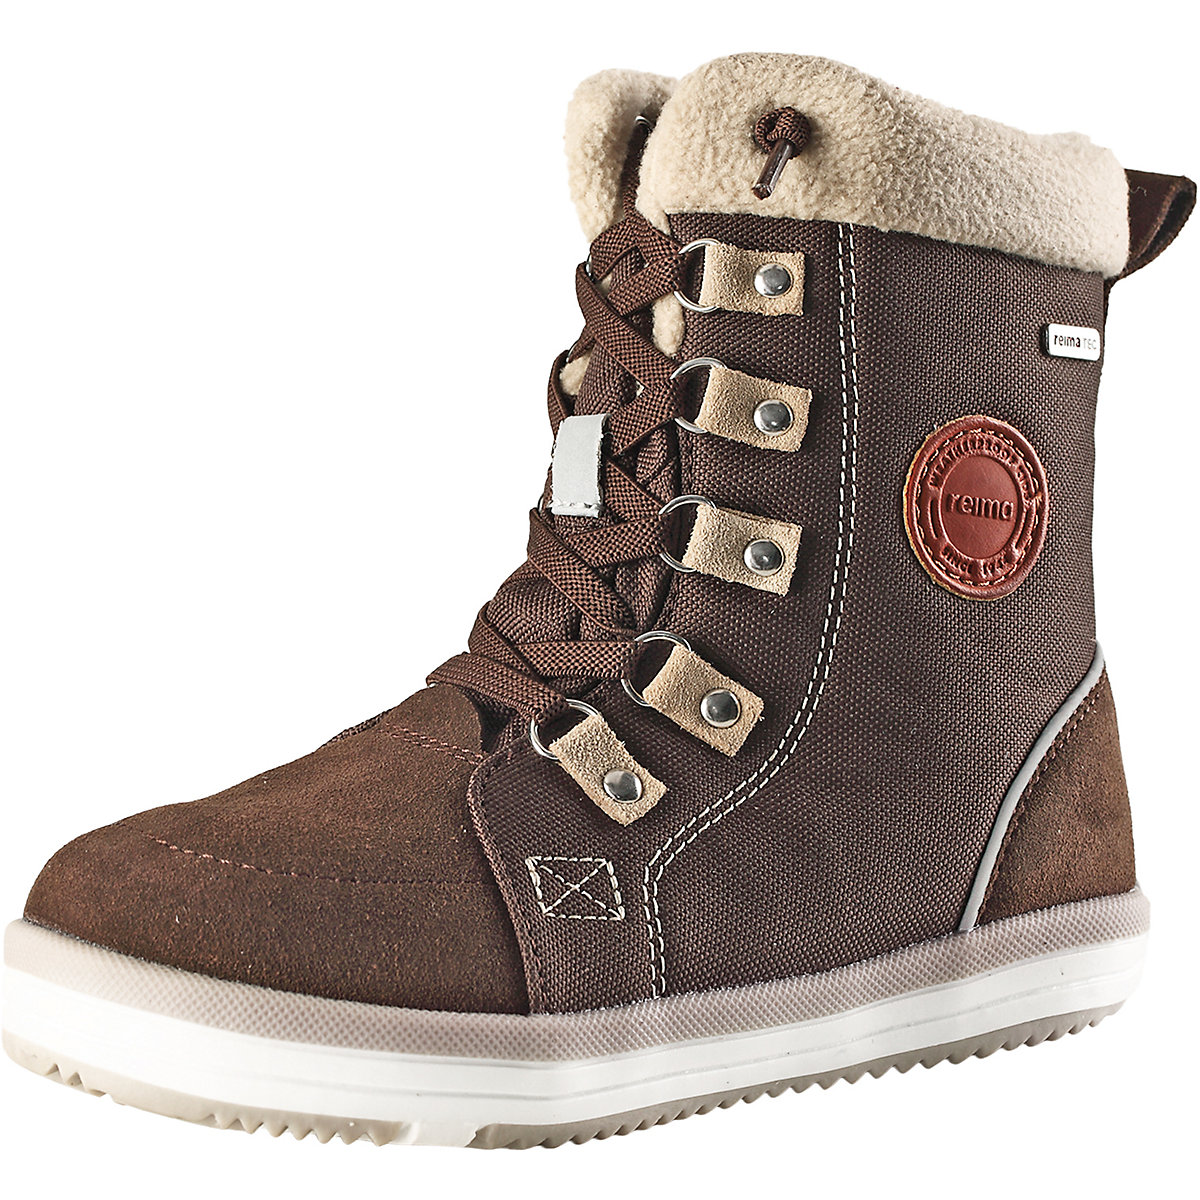 REIMA Boots 8624998 for boys winter boy baby shoes child snow boots male shoes plus velvet child girls big boy baby winter boots ankle boots 2016 winter